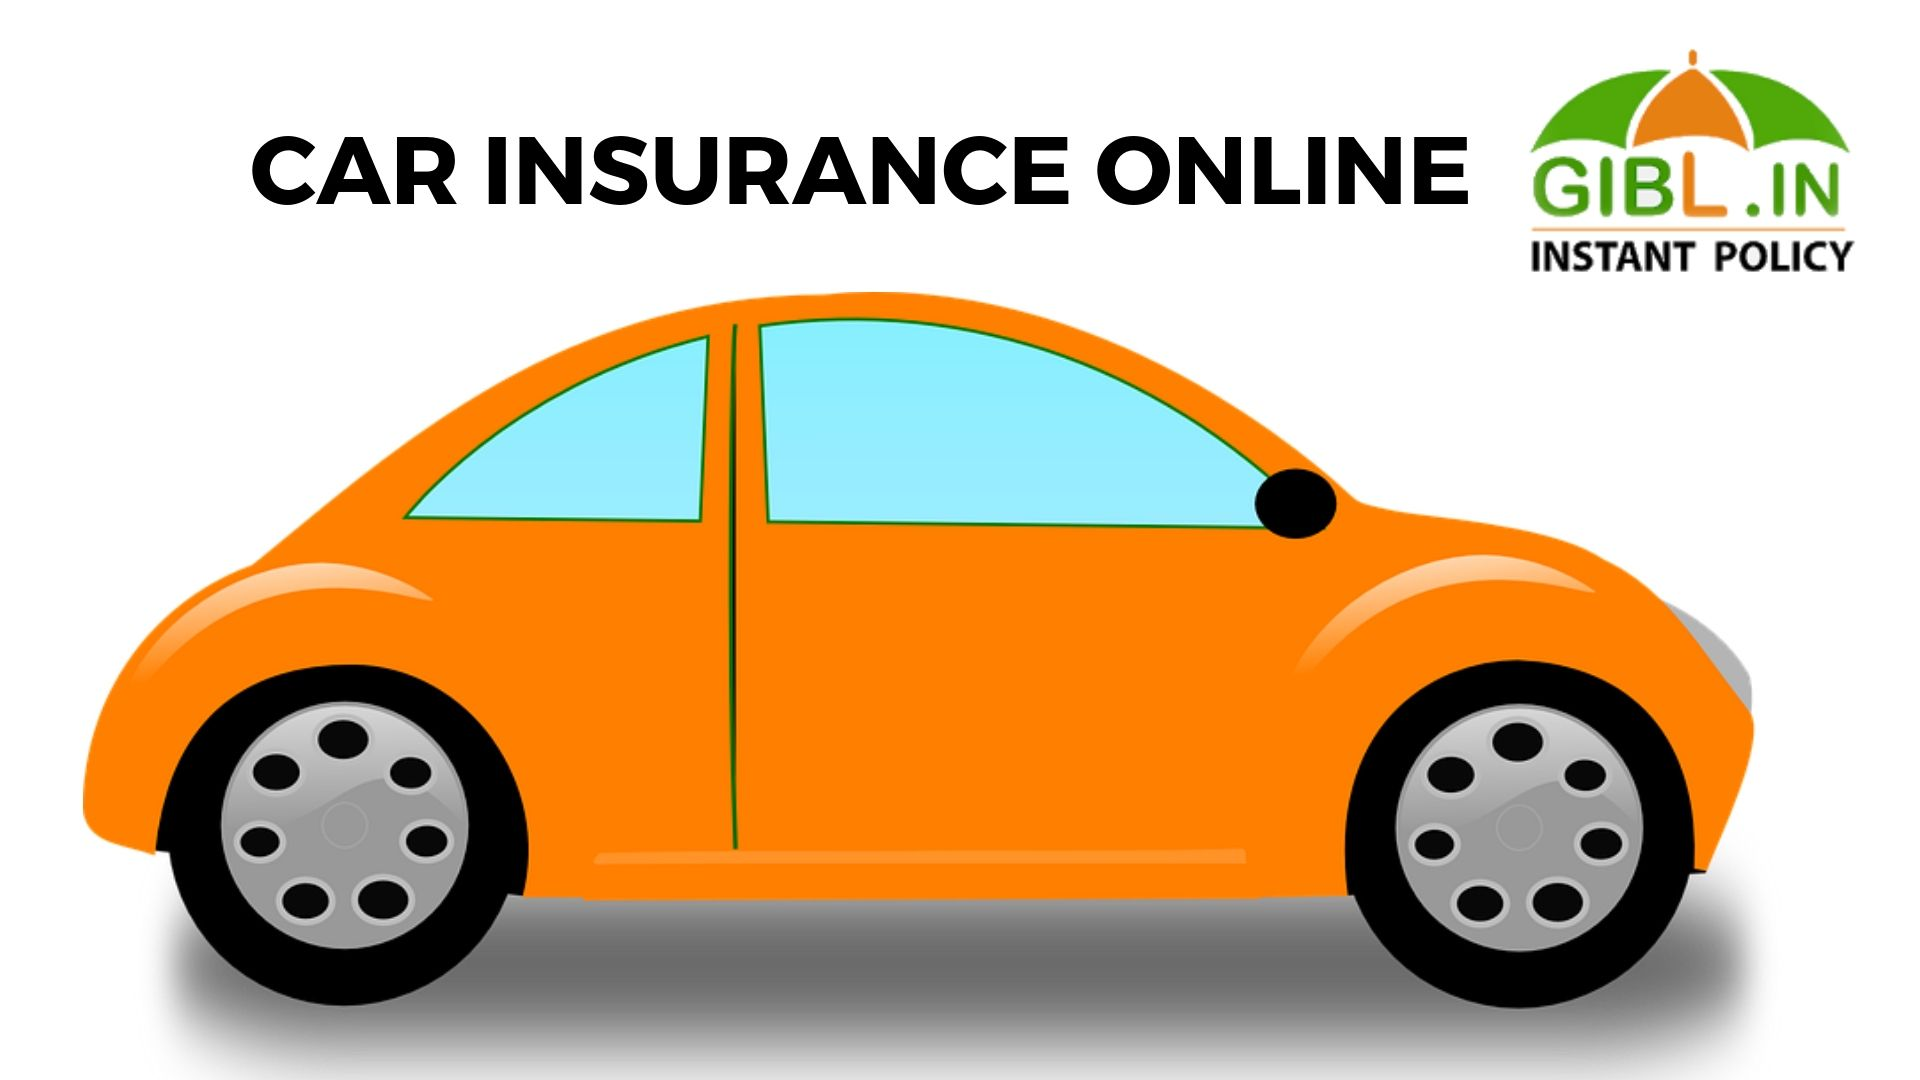 Finding The Right Car Insurance Online Policy Is Quite Tedious Job